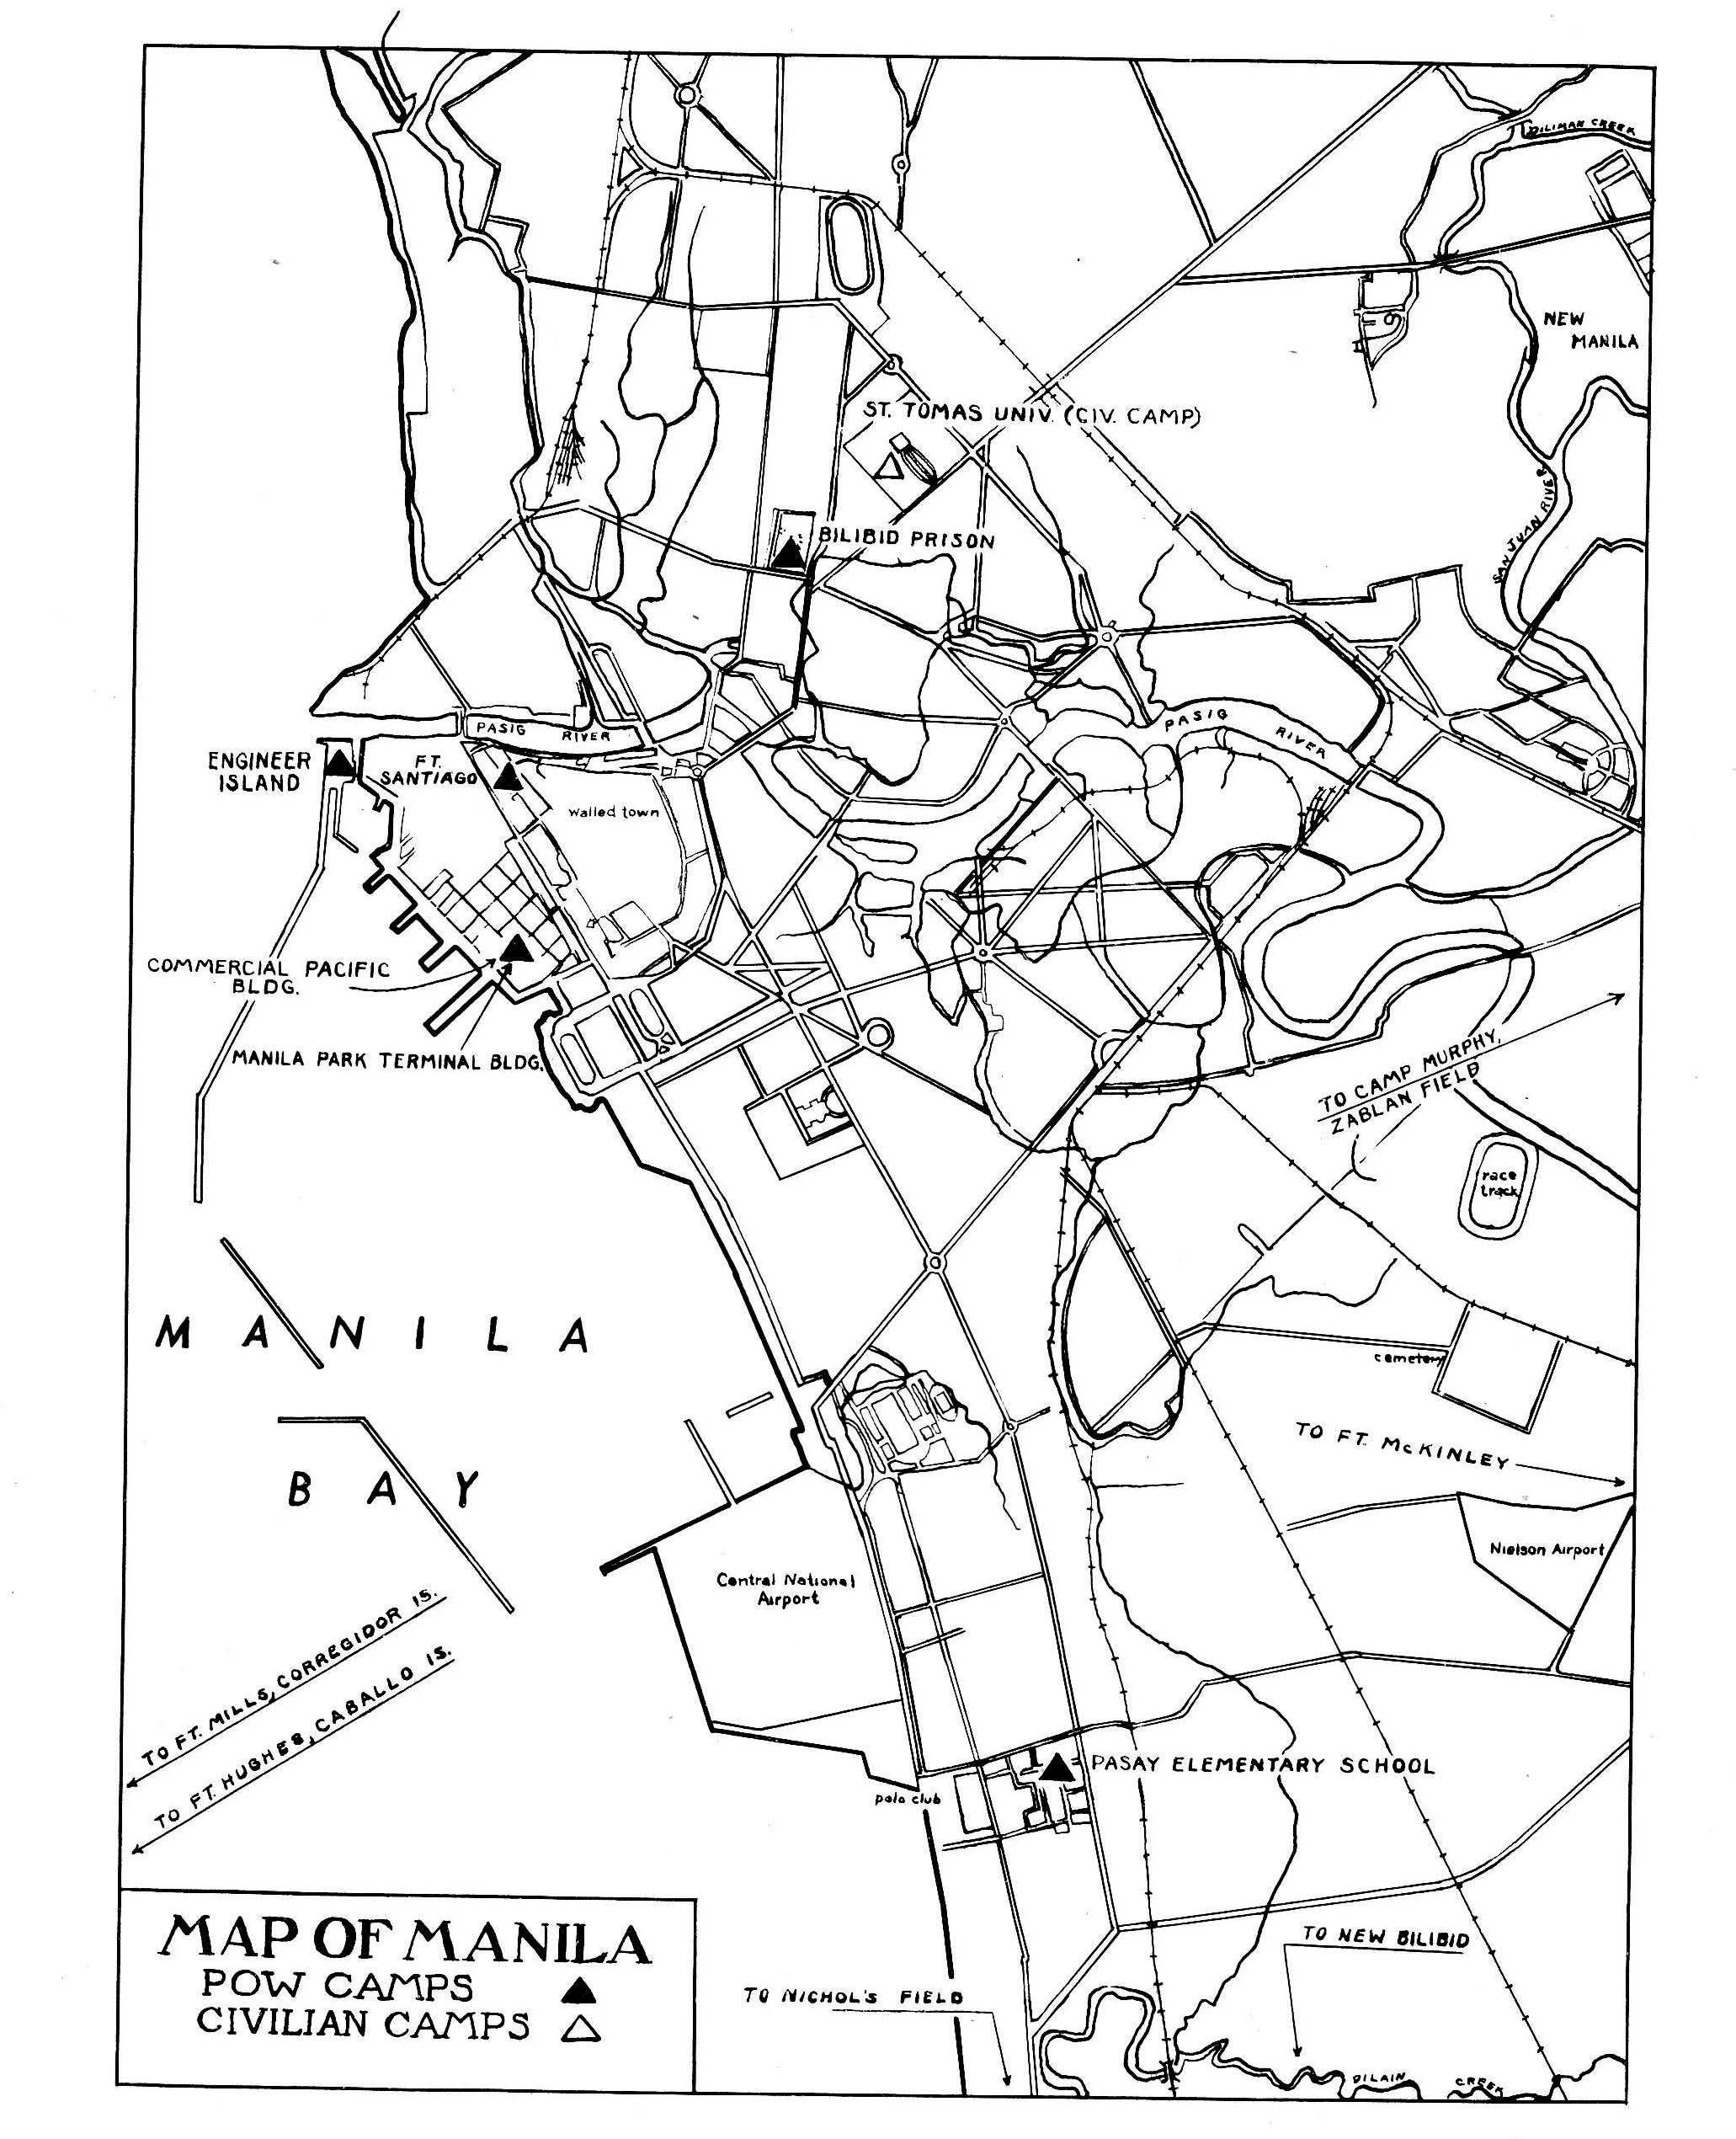 pow c s in manila wwii maps of the philippines prisoners of Manila Shopping pow c s in manila